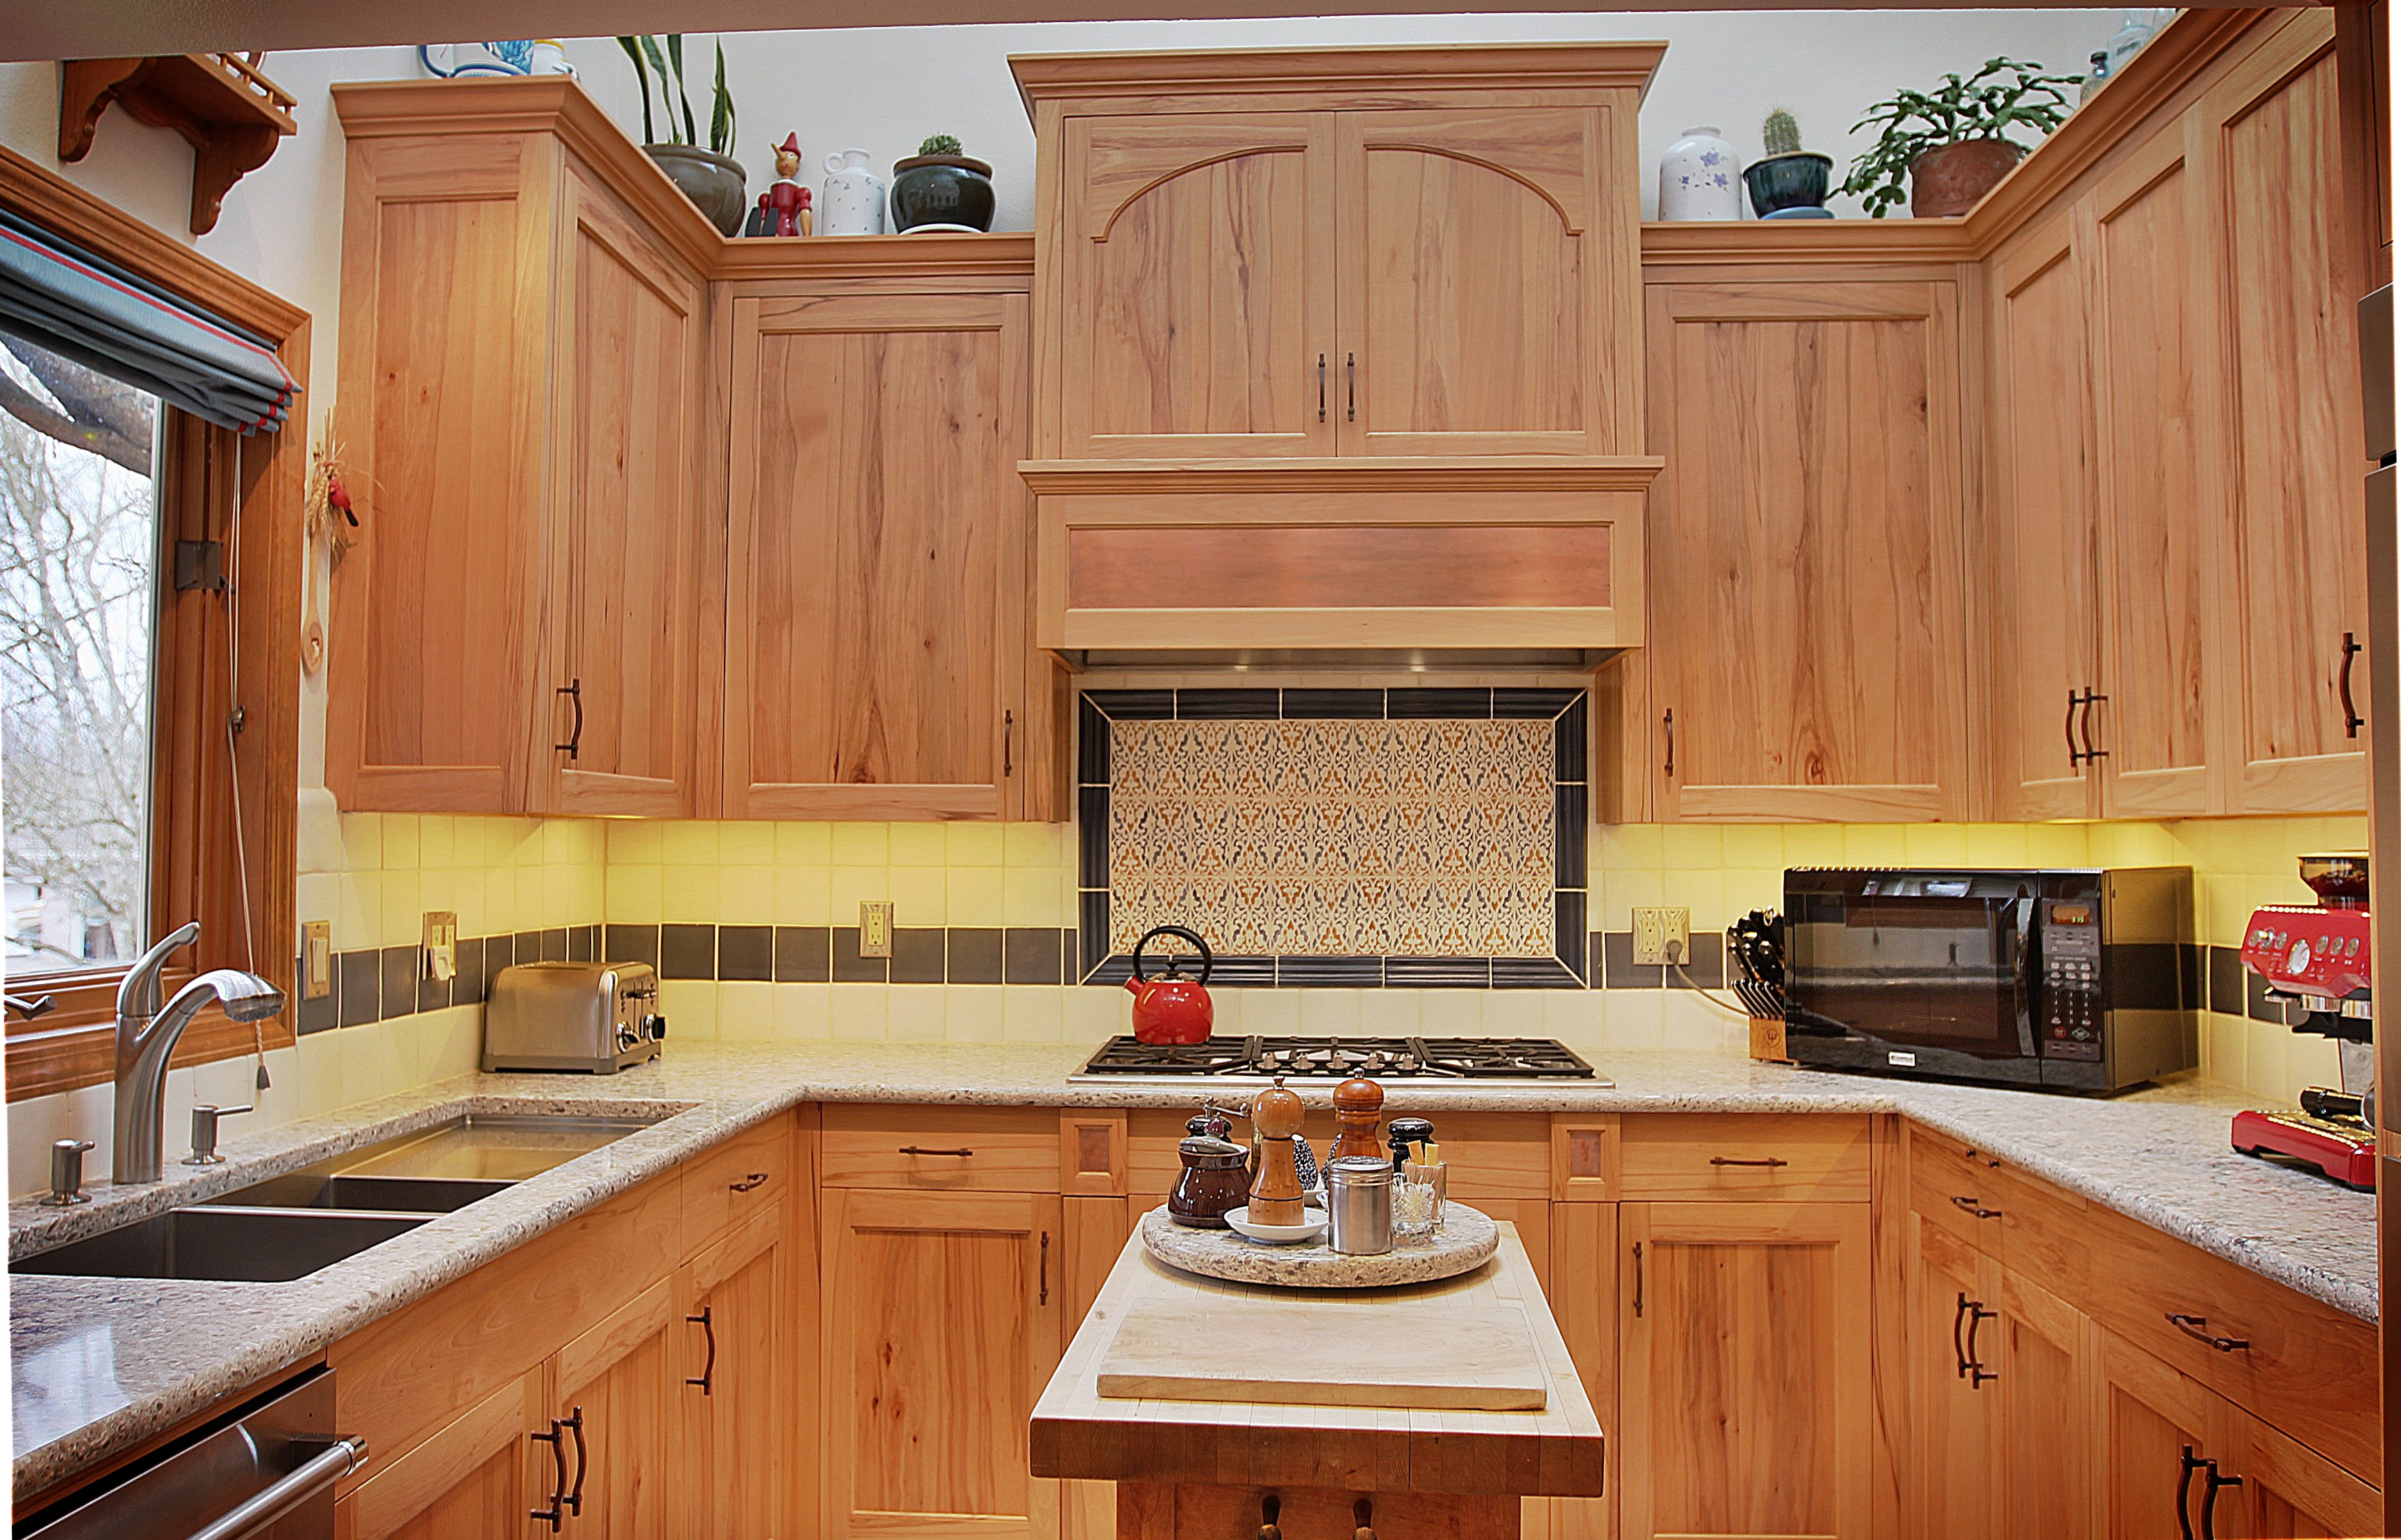 3 Reason Why You Should Finance Your New Slab Countertops